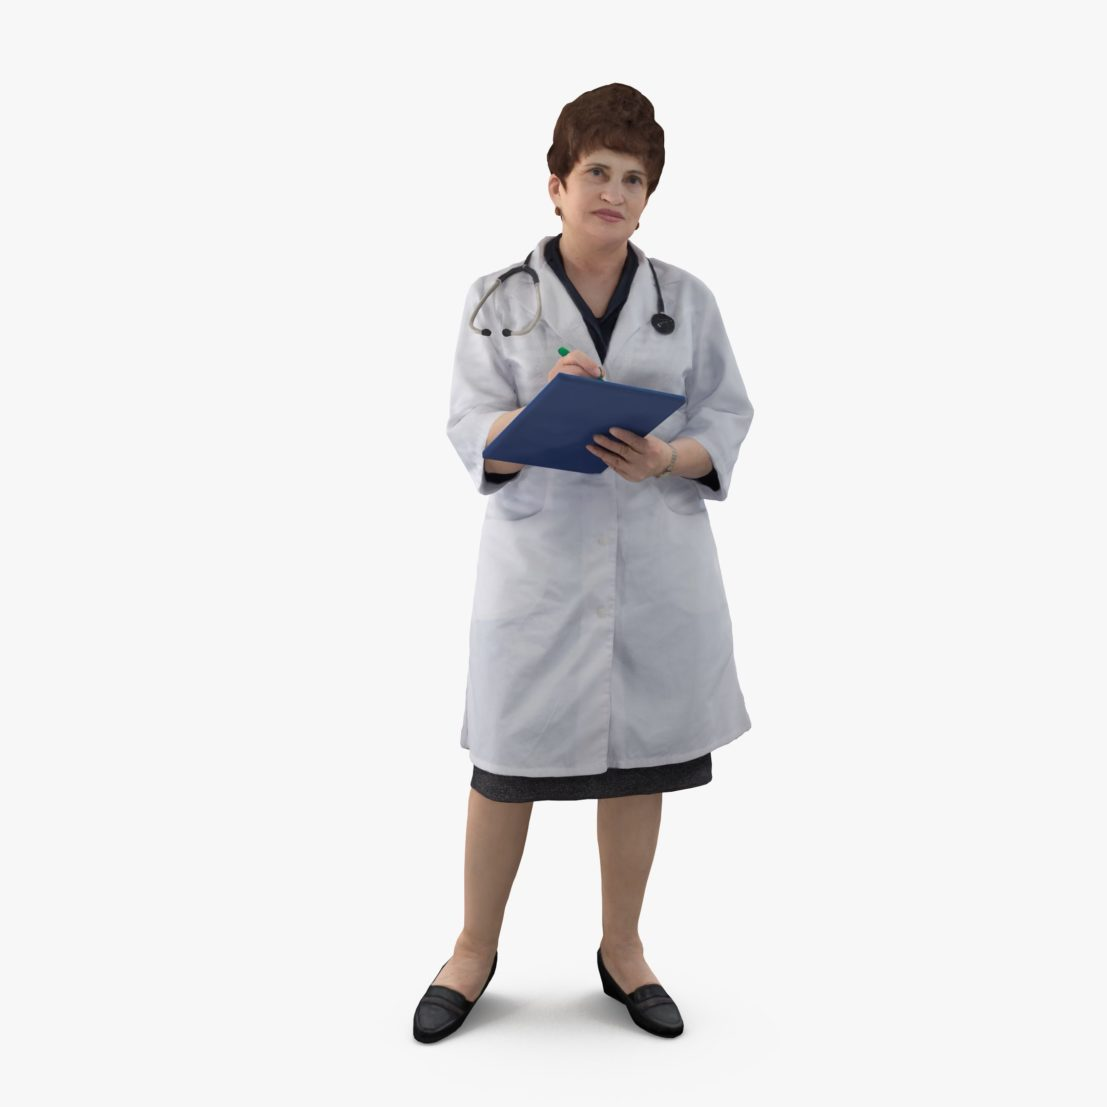 Medical Female Standing 3D Model | 3DTree Scanning Studio